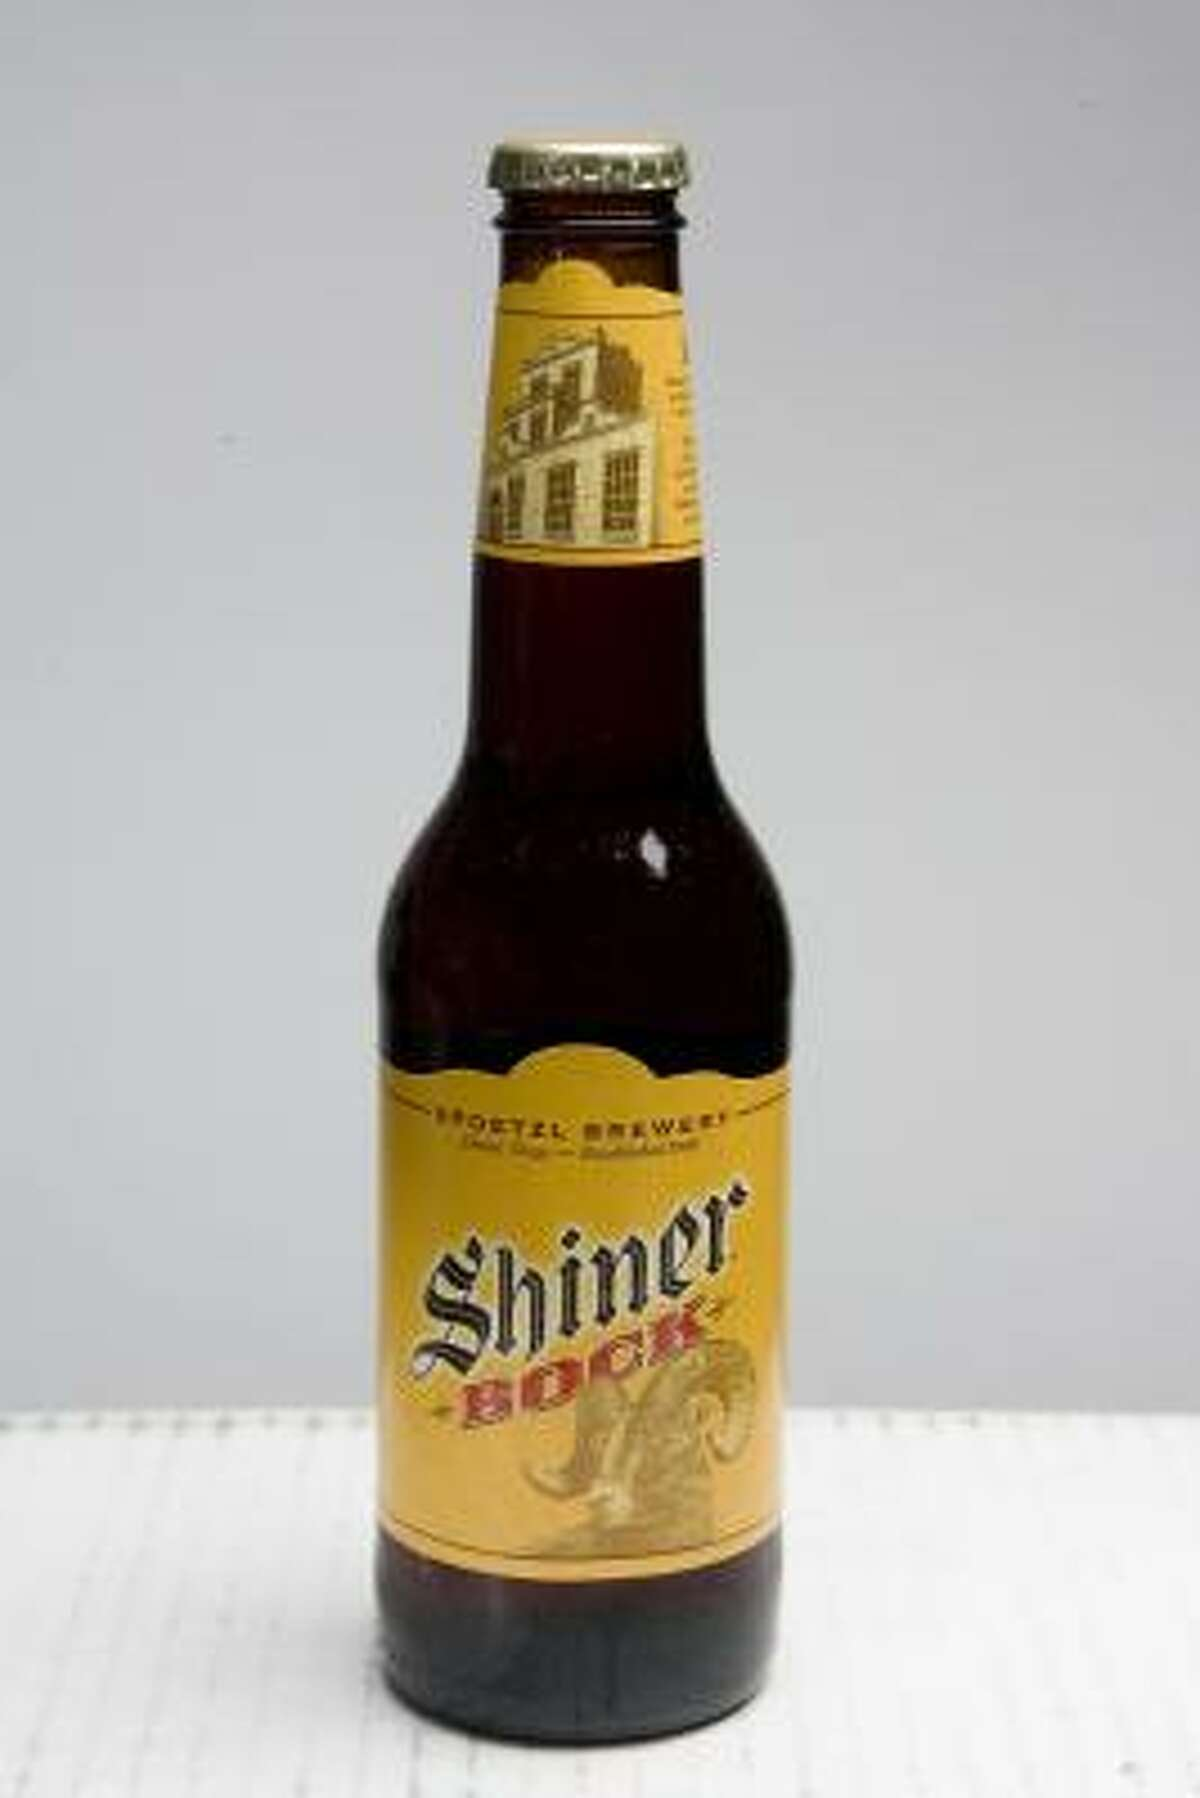 Shiner Bock is a dark, Bavarian-style beer that's a little fruity, chocolaty and hoppy. The Shiner brewery put the town of Shiner on the map.